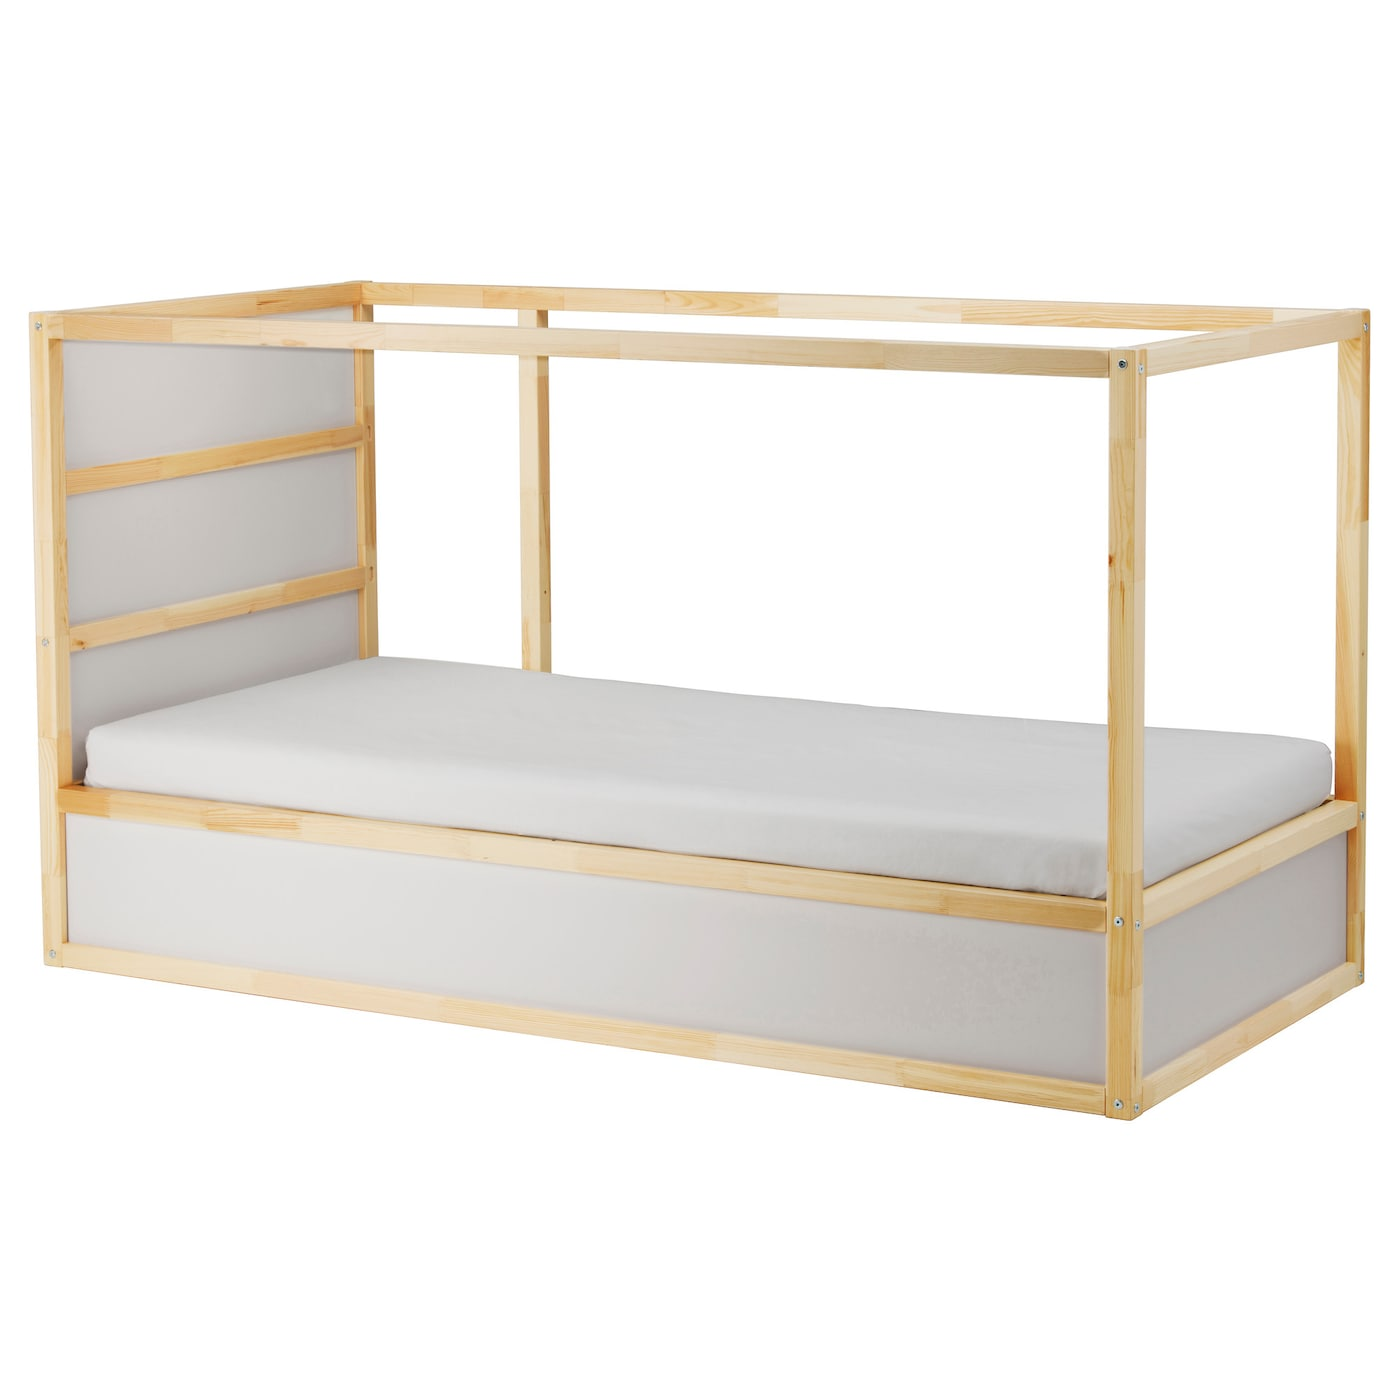 Kura reversible bed white pine 90x200 cm ikea - Lit double superpose ikea ...